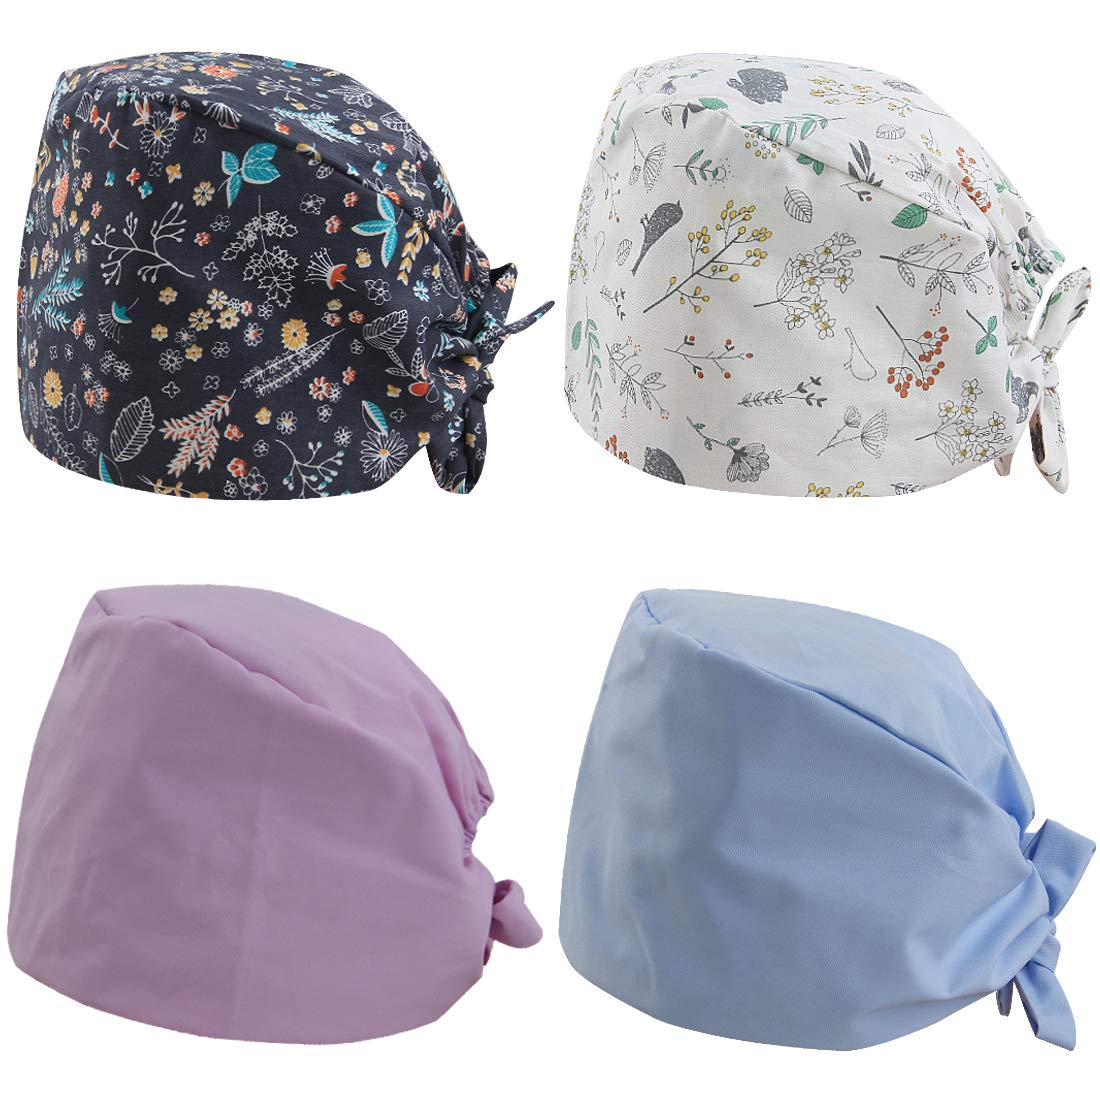 kilofly 4pc Women Men Adjustable Scrub Cap Sweatband Bouffant Hats Value Set by kilofly